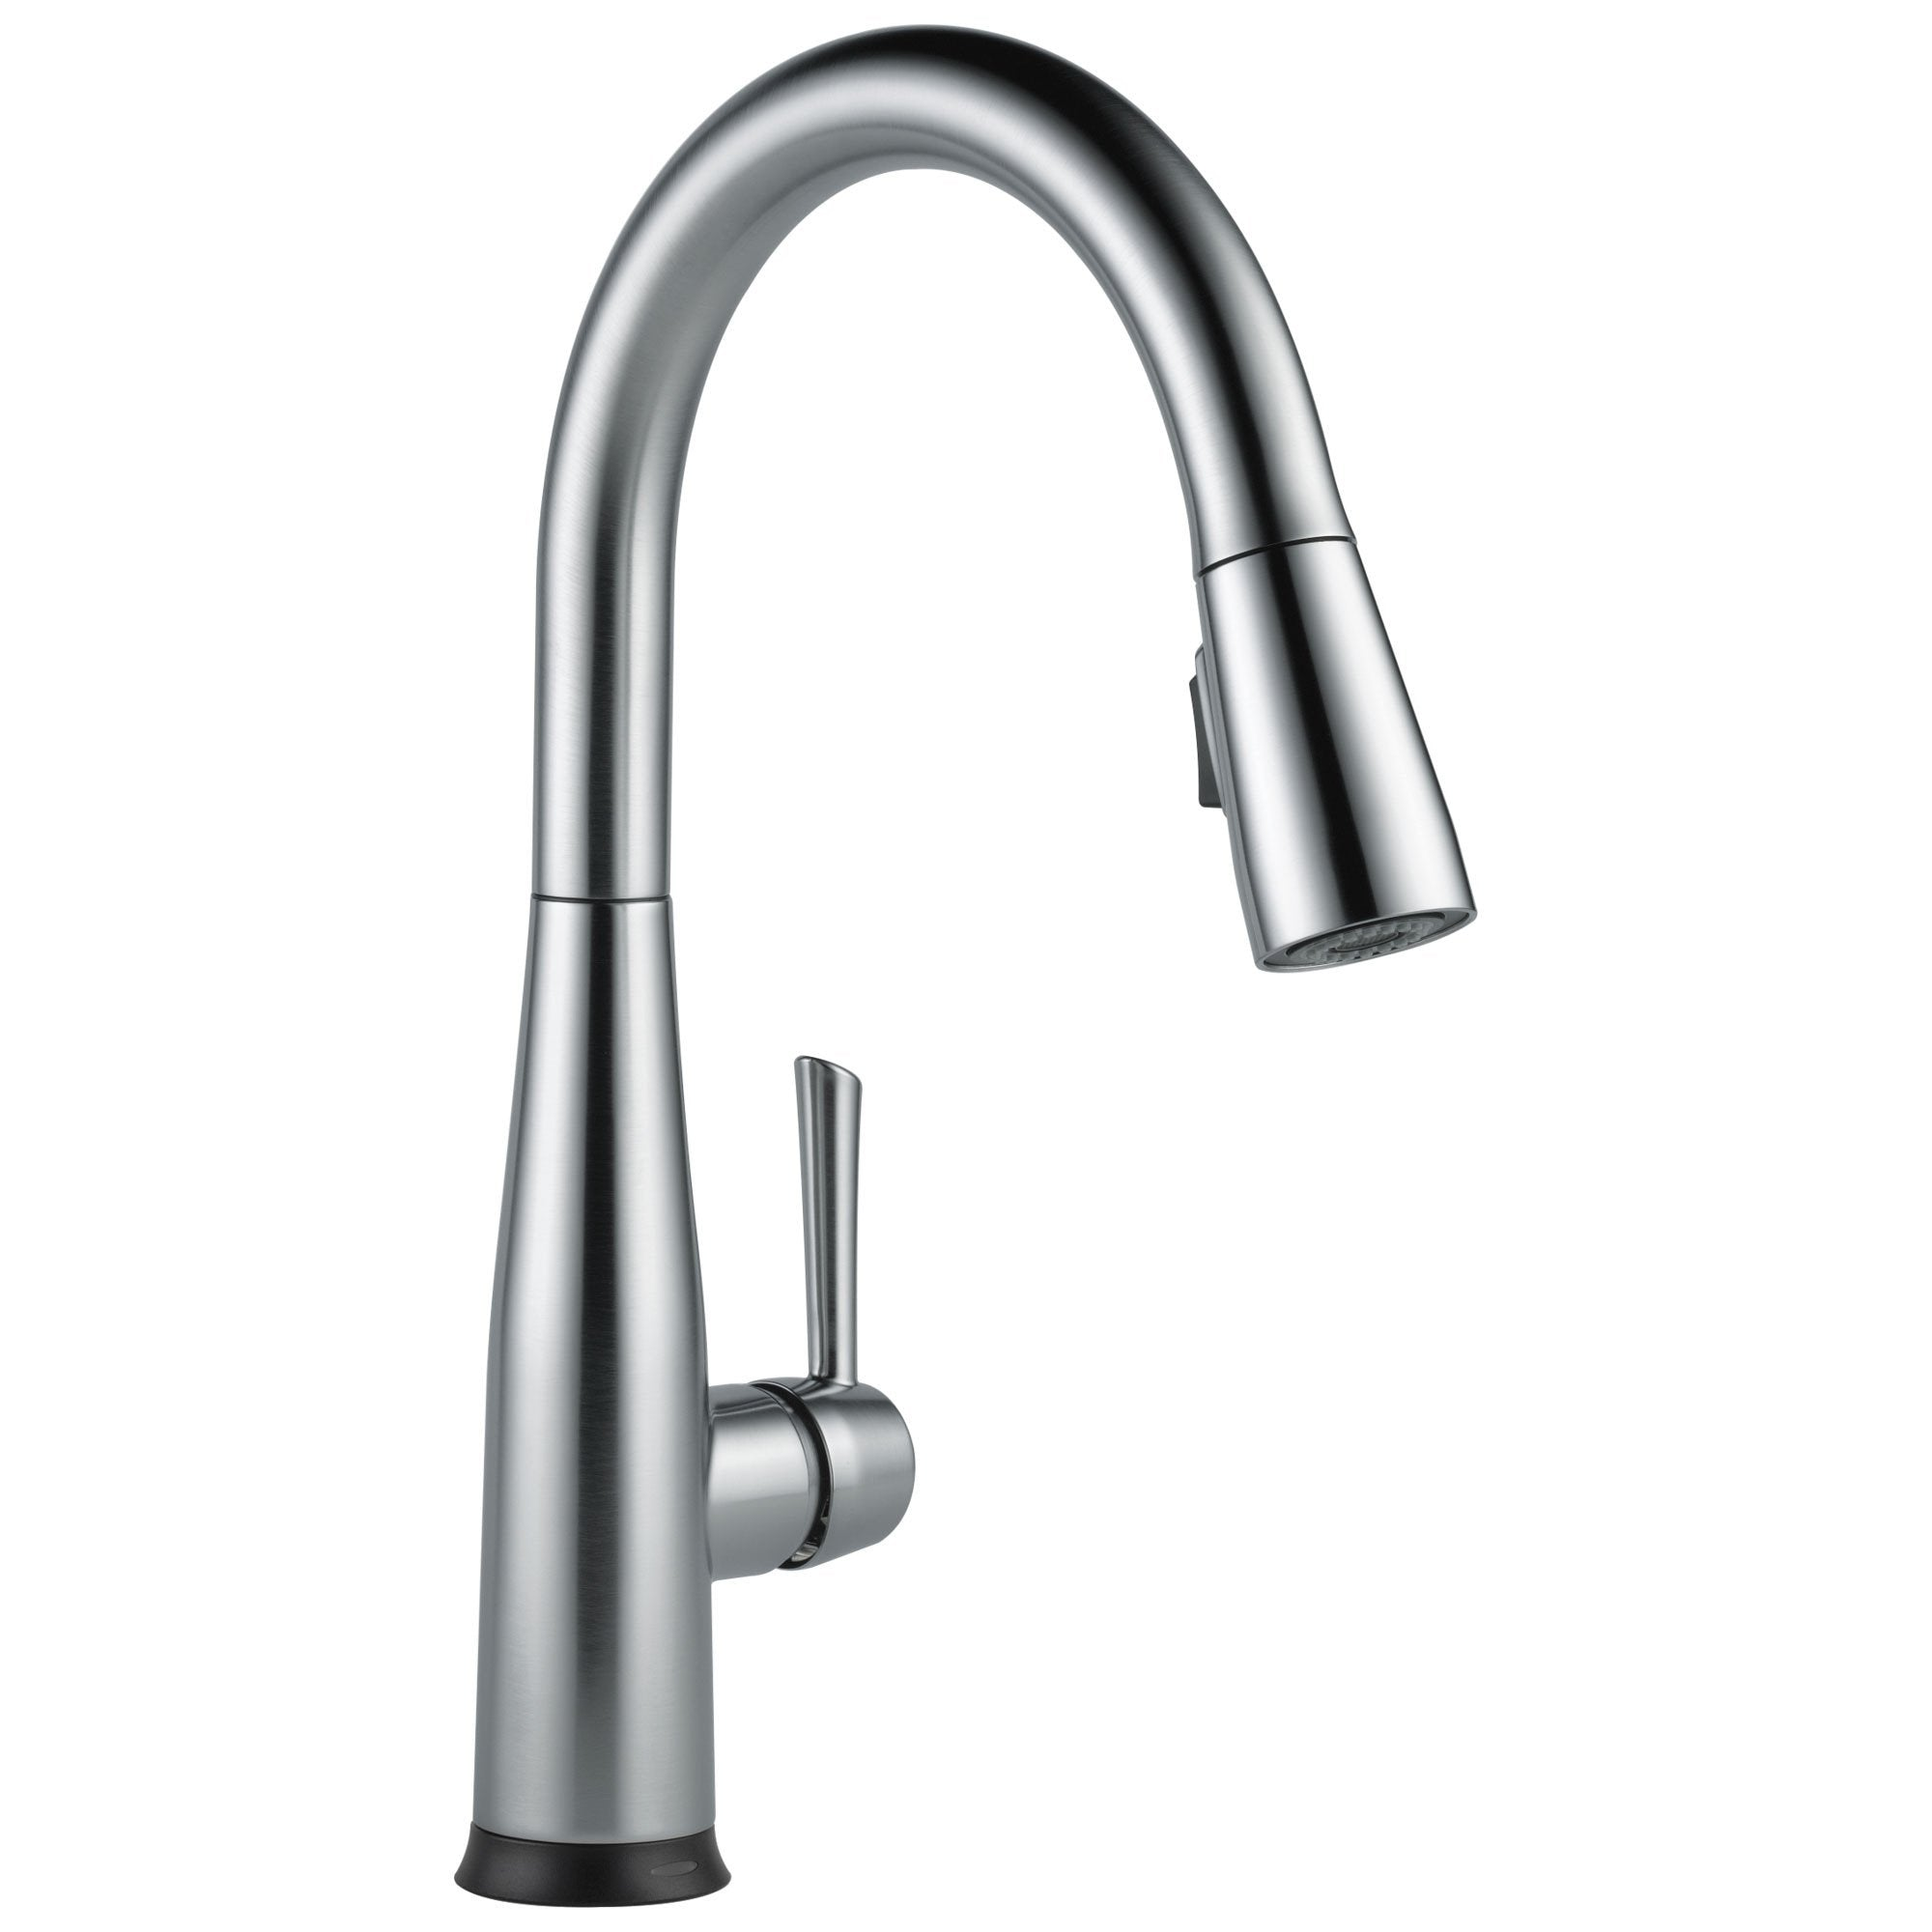 Delta ESSA Arctic Stainless Steel Finish Modern Single Lever Handle Electronic Pull-Down Kitchen Faucet with Touch2O Technology 714319